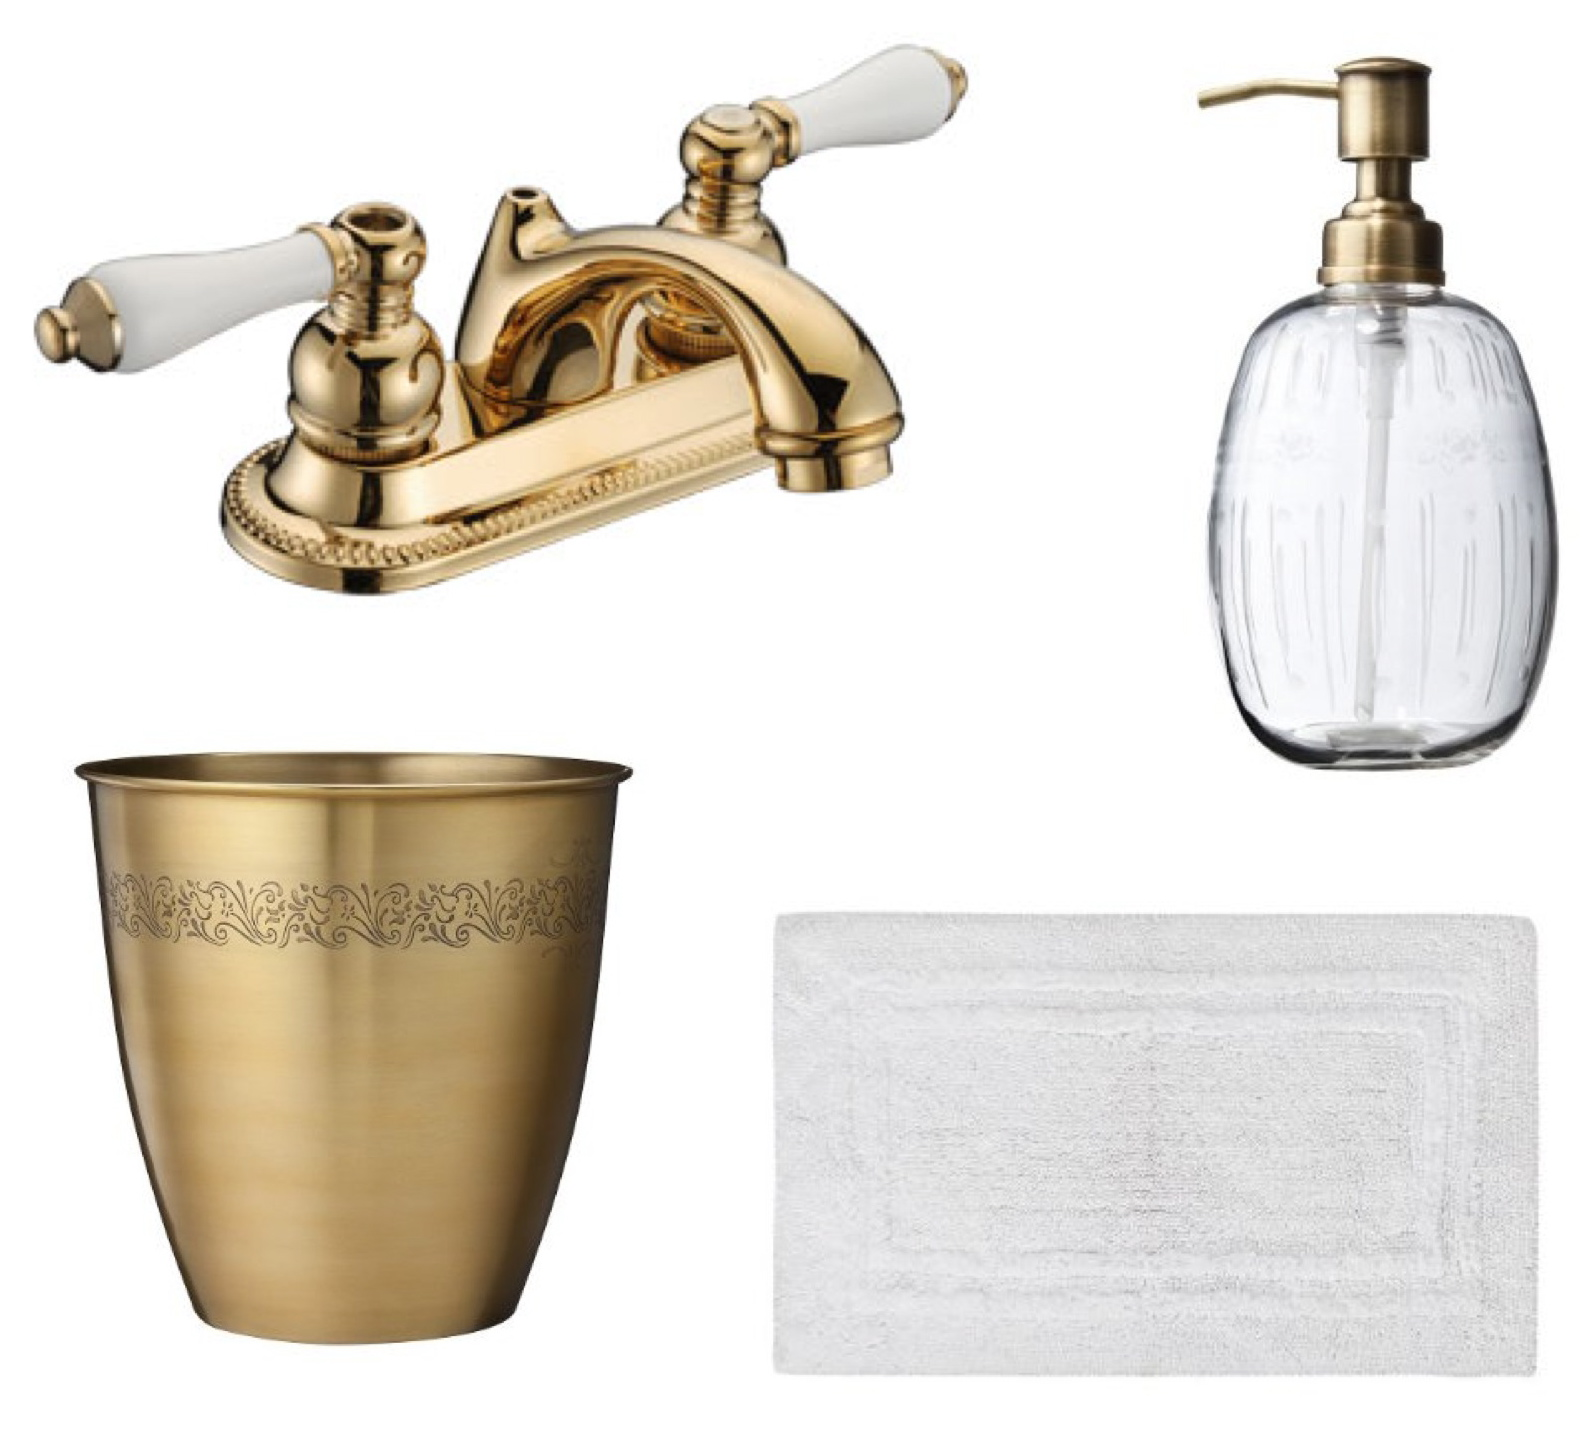 Bathroom Accessories - Julie Blanner